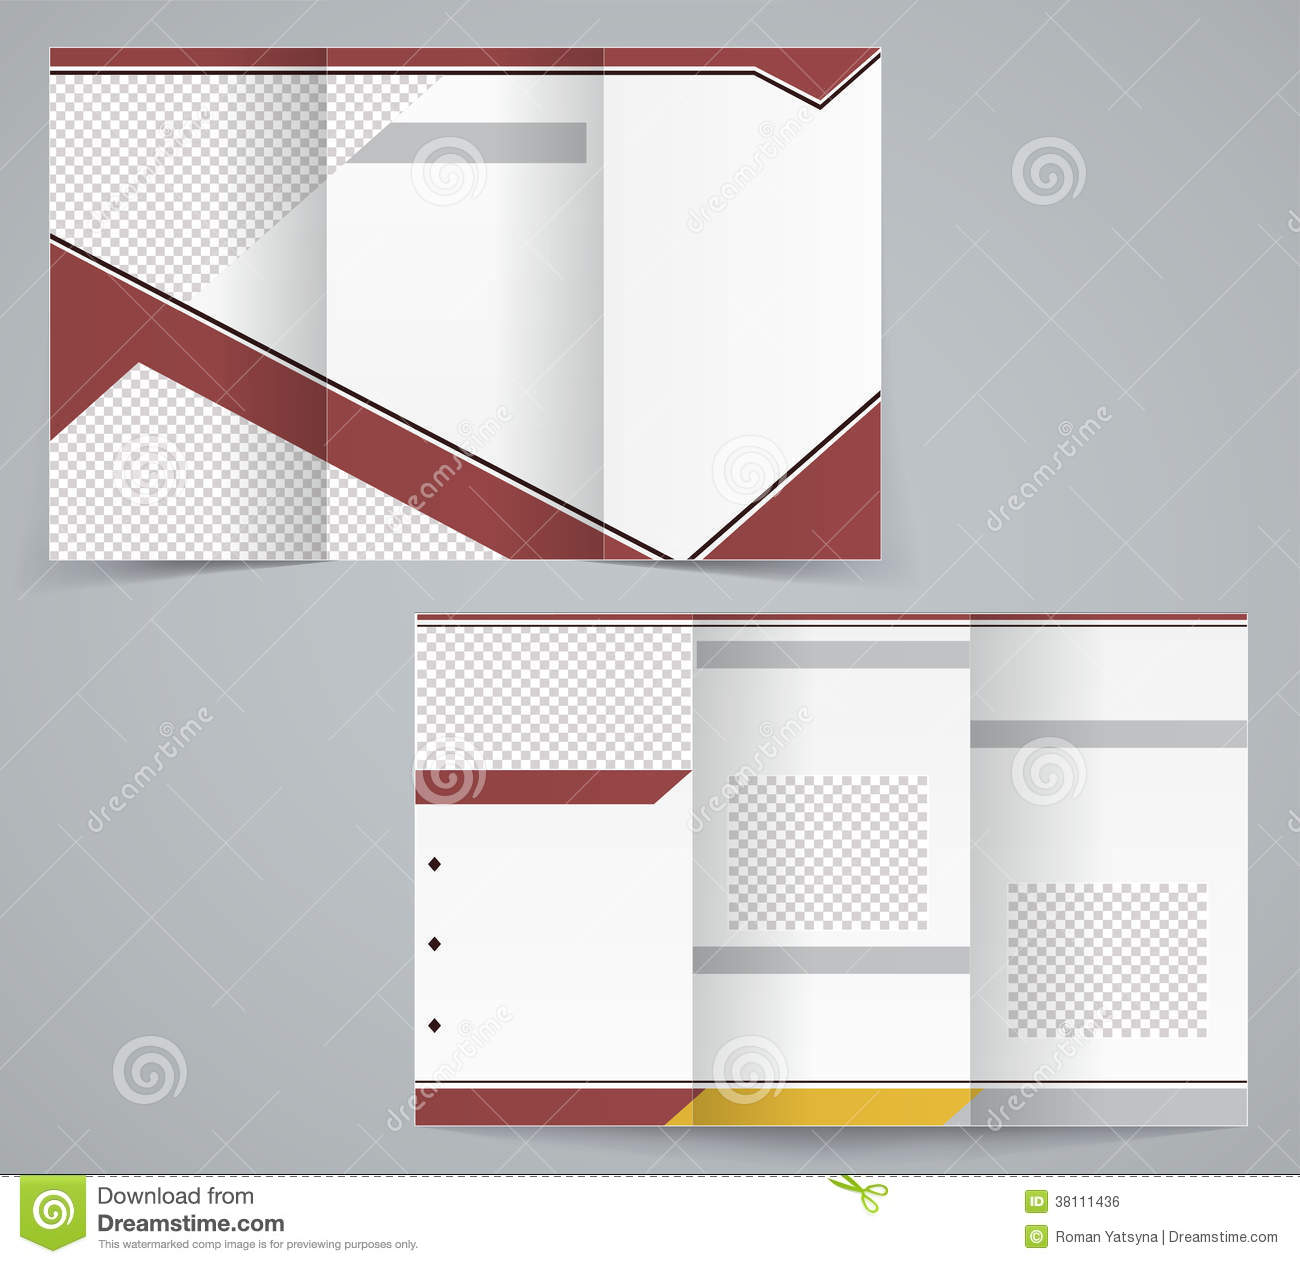 Tri fold business brochure template stock vector image for Tri fold business brochure template